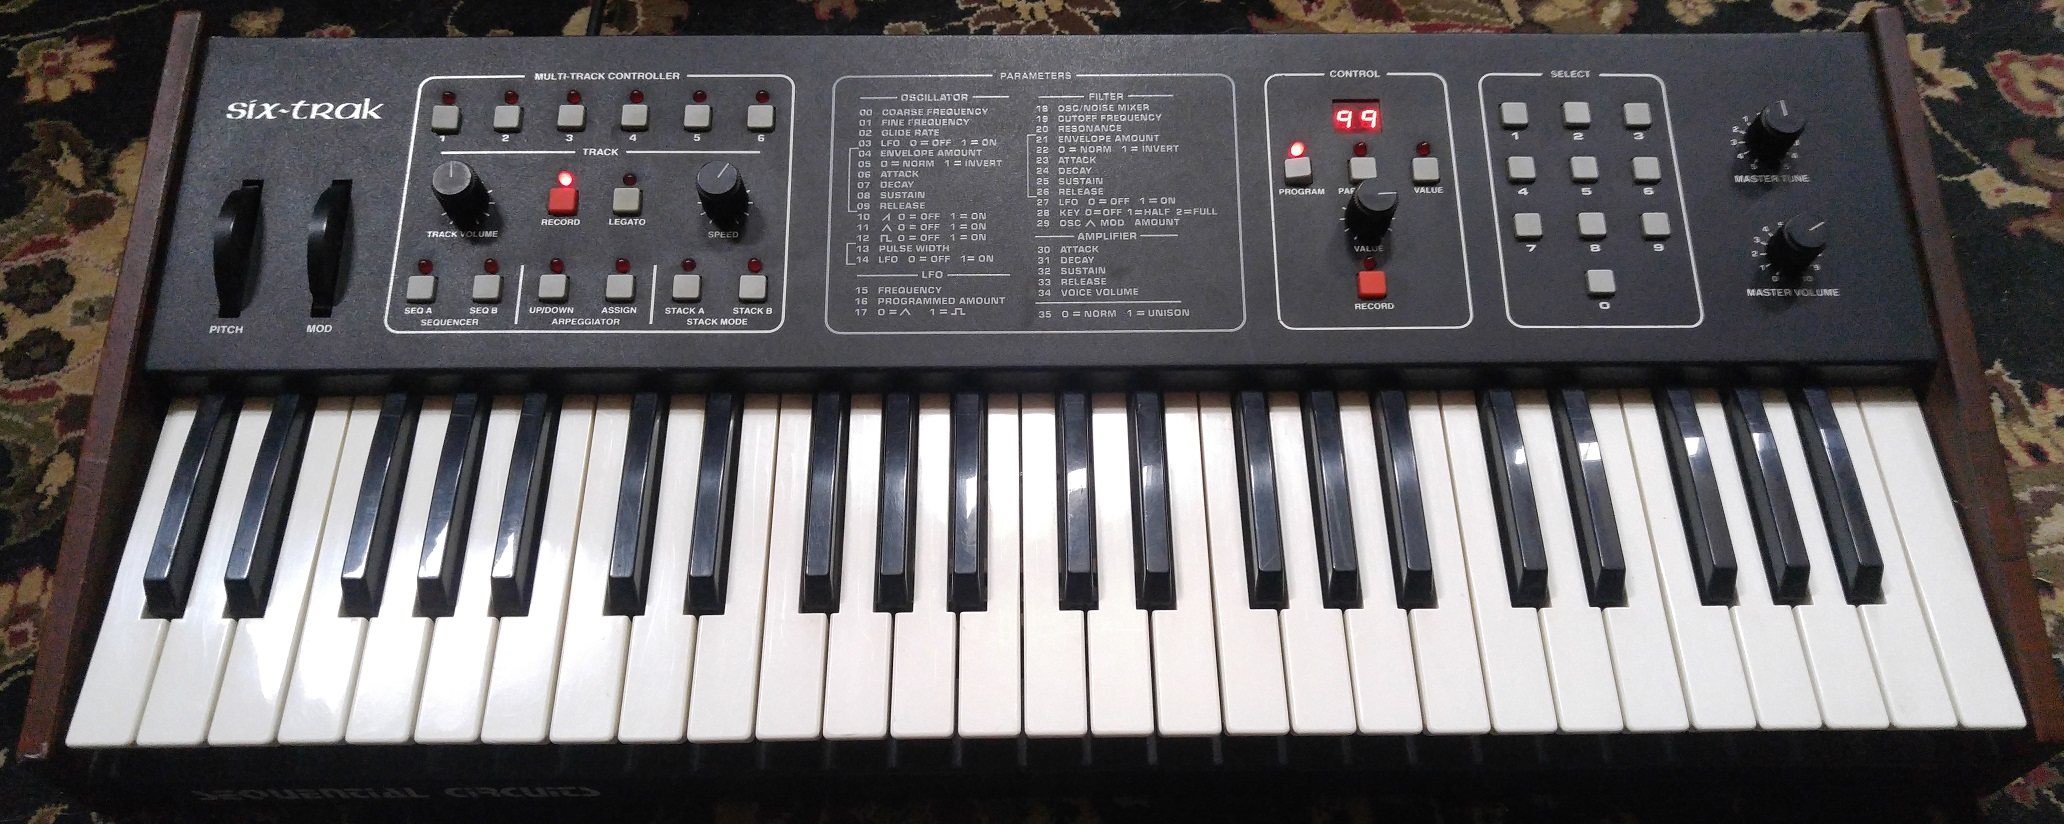 Vintage Sequential Circuits Synthesizer in full working shape, with manual